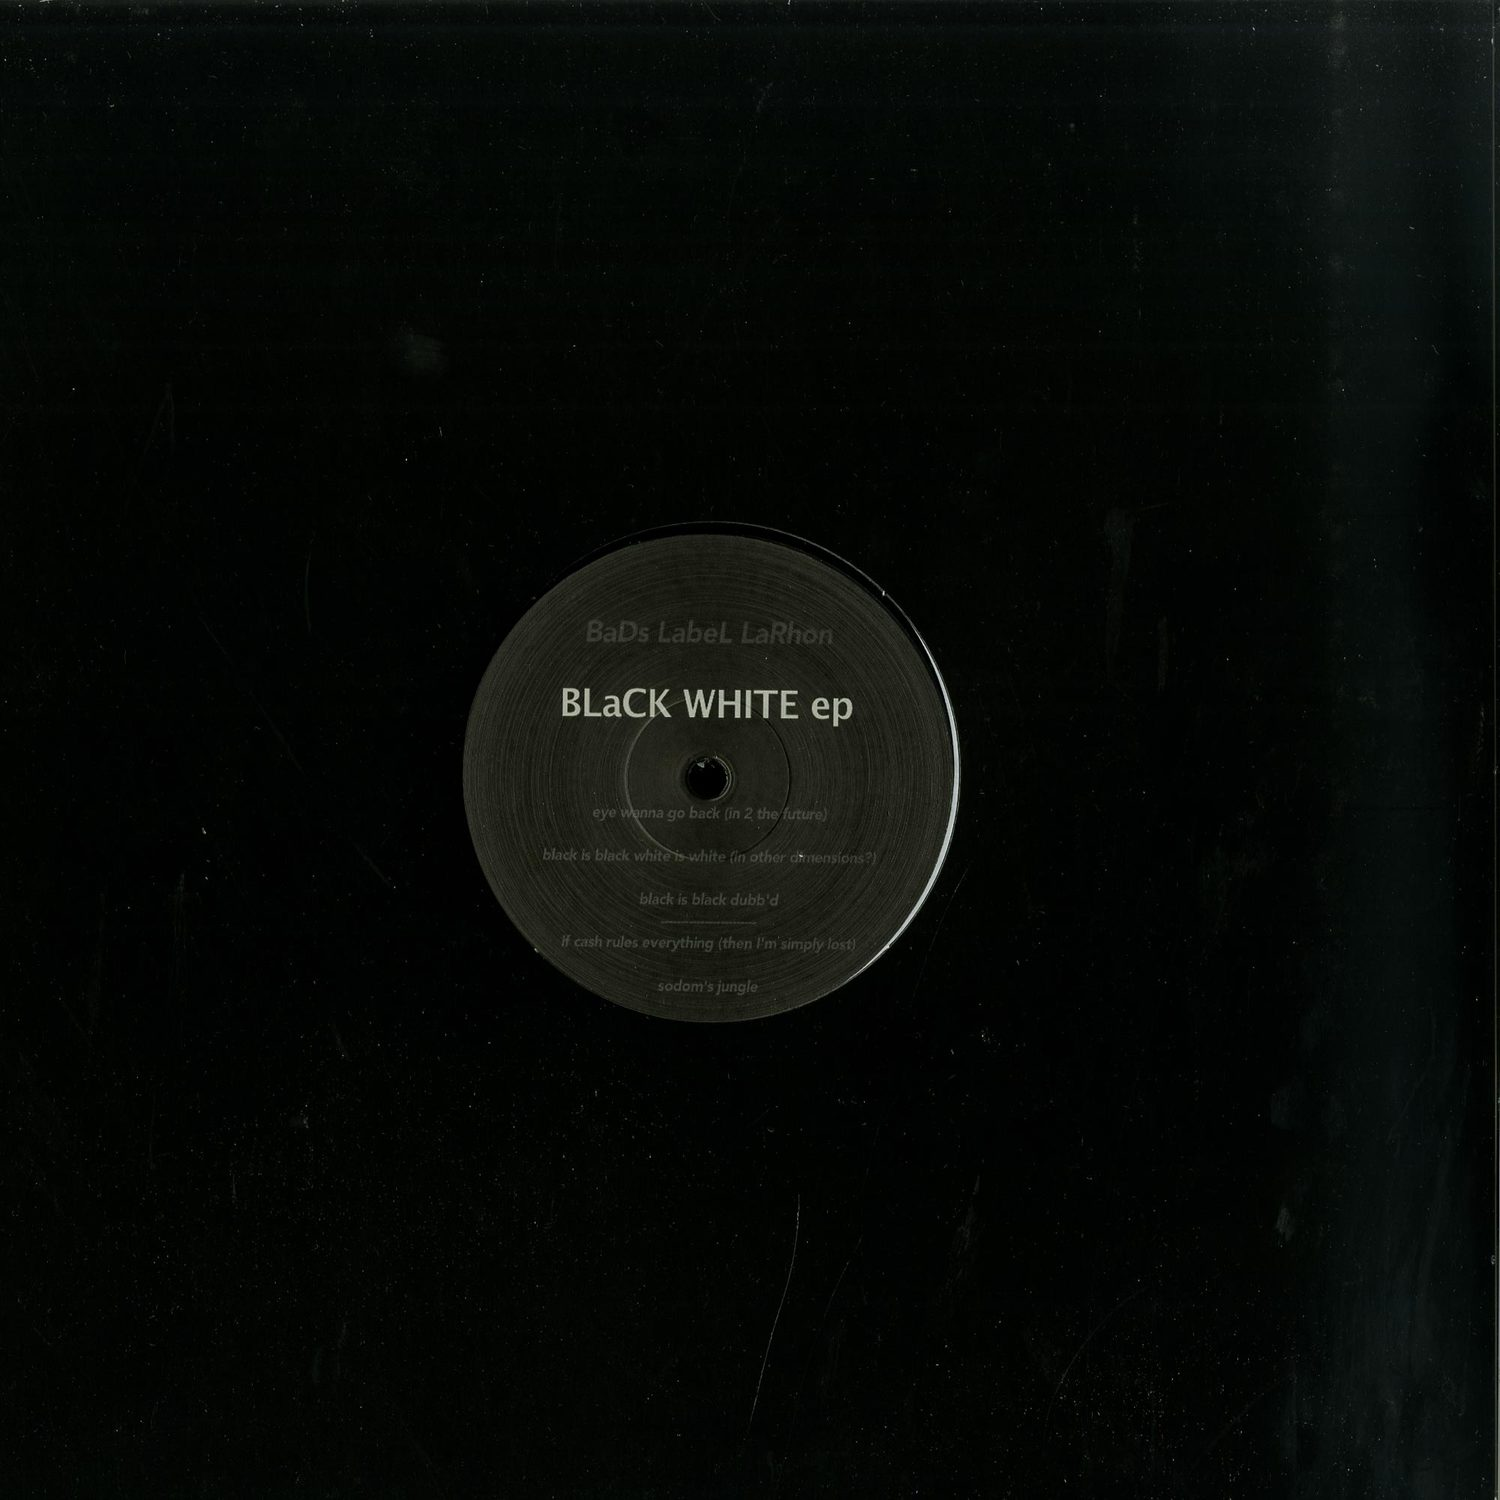 Elbee BaD - BlaCK WHITE ep